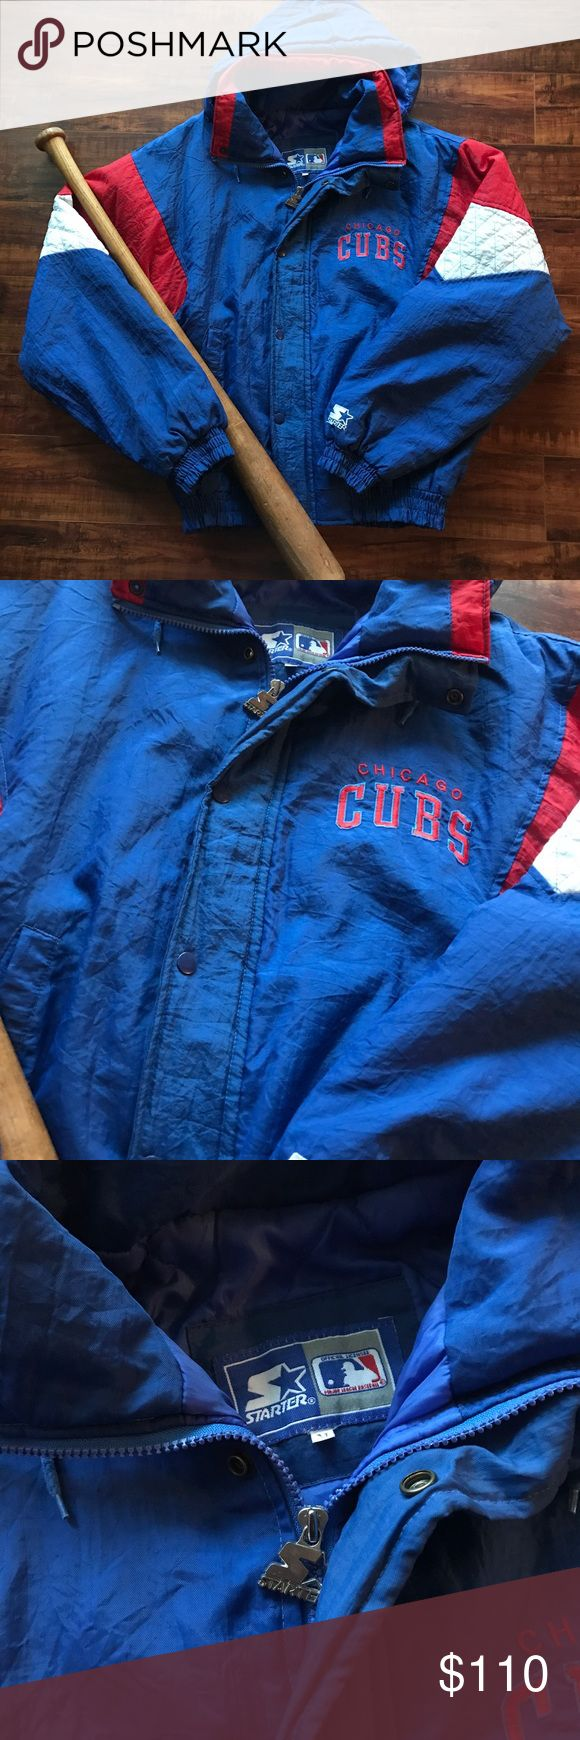 Starter Chicago Cubs jacket Starter Chicago Cubs jacket  Size M  Just in amazing condition Unisex Jackets & Coats